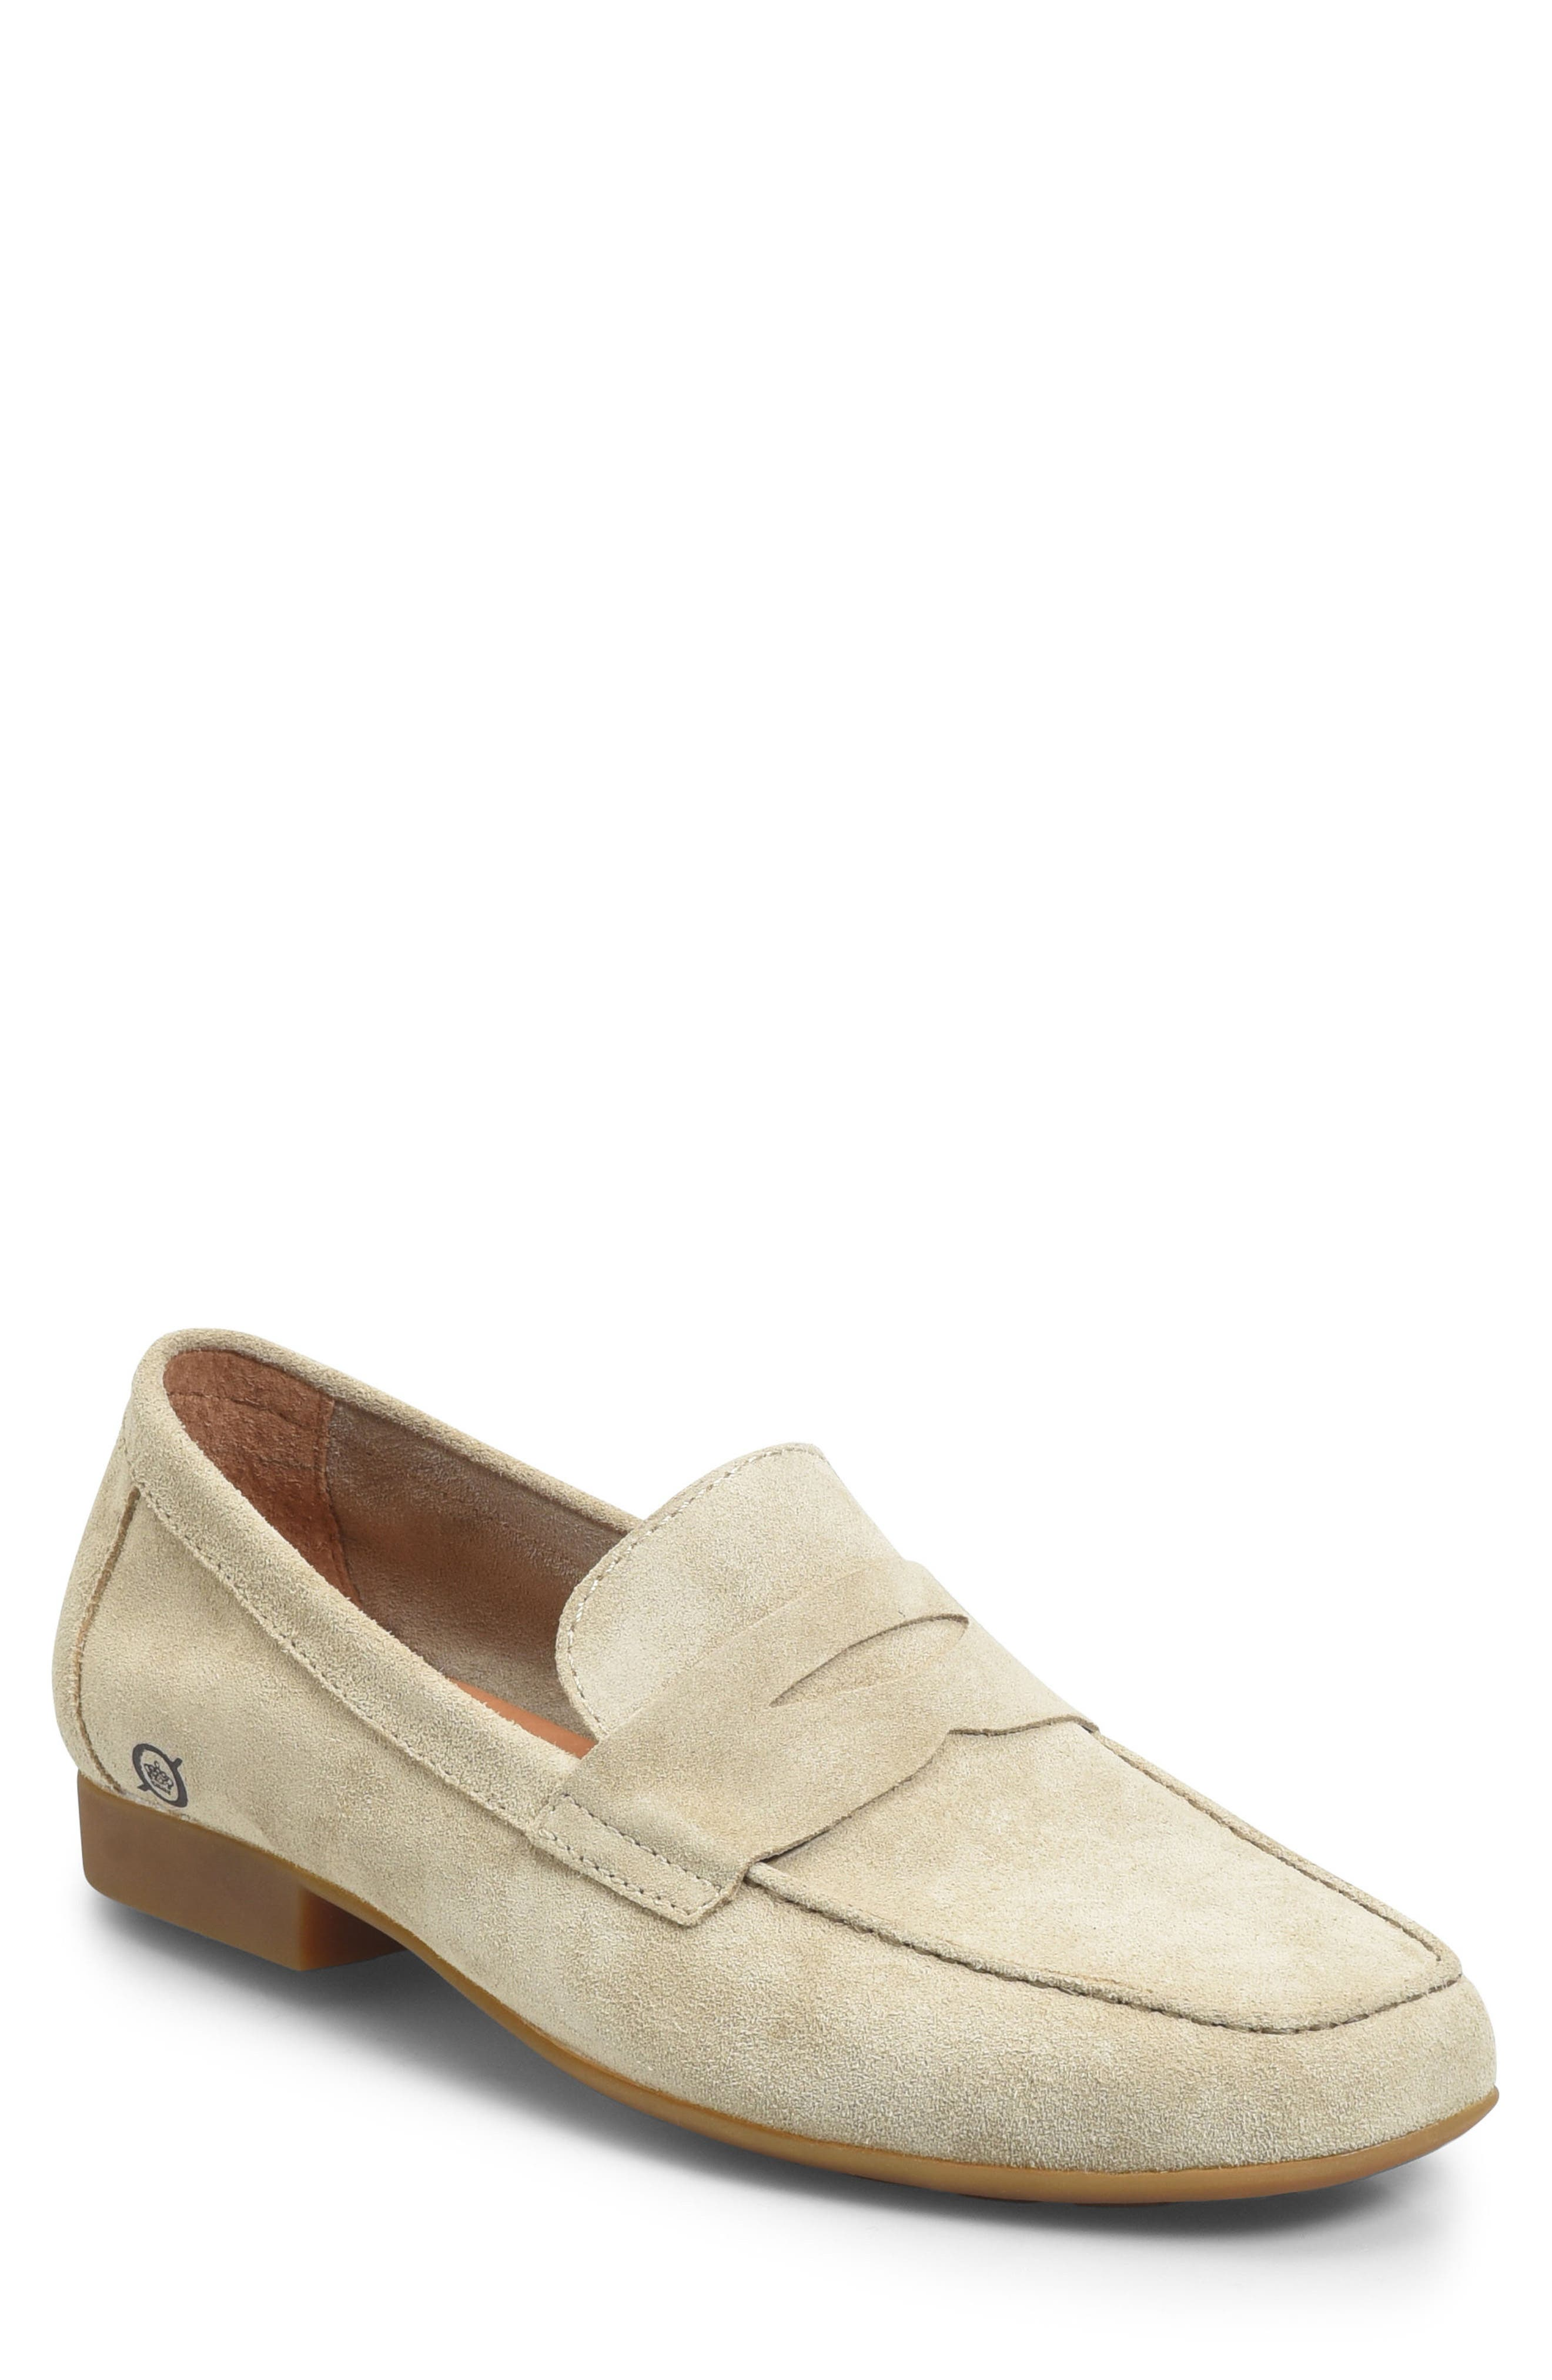 'Dave' Penny Loafer,                             Main thumbnail 1, color,                             Natural Suede